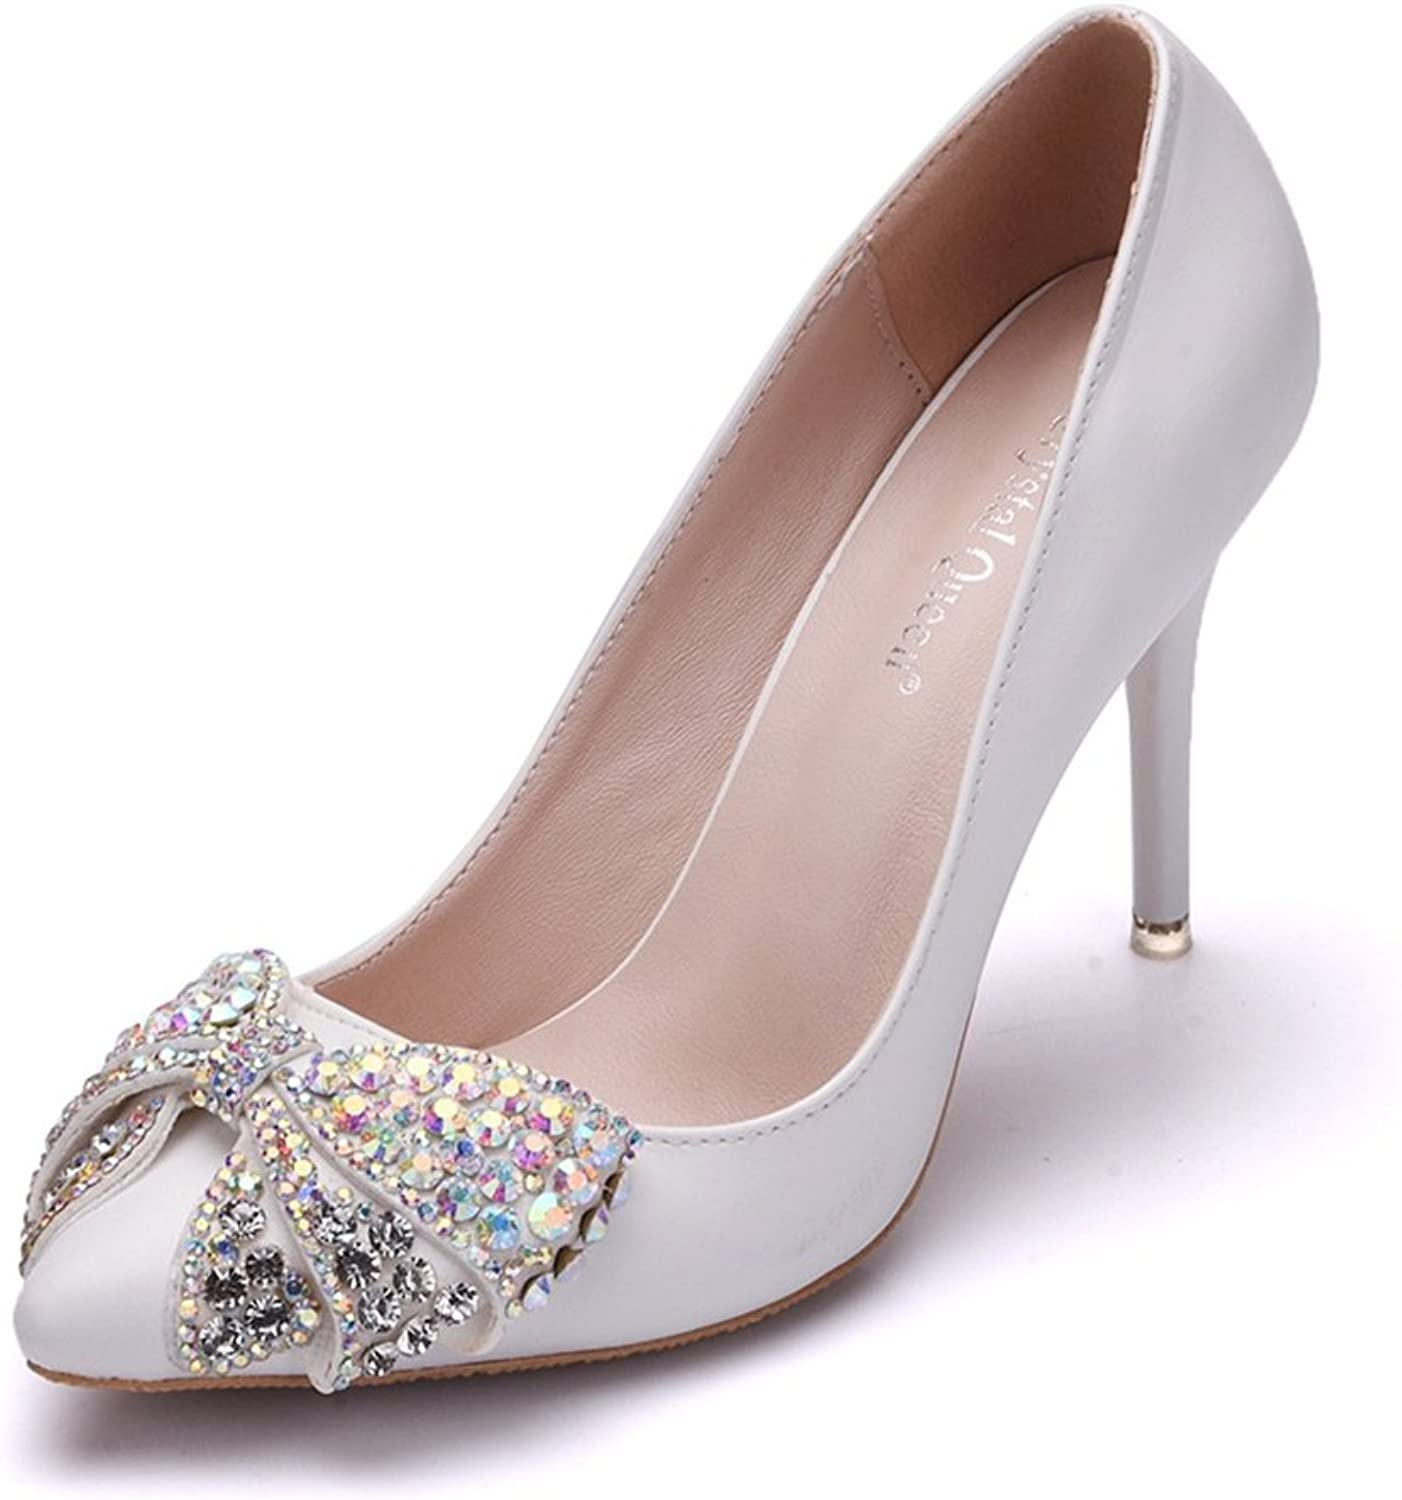 Eleganceoo Women's Pointed shoes Slip on colorful Rhinestone Bow high Heels shoes